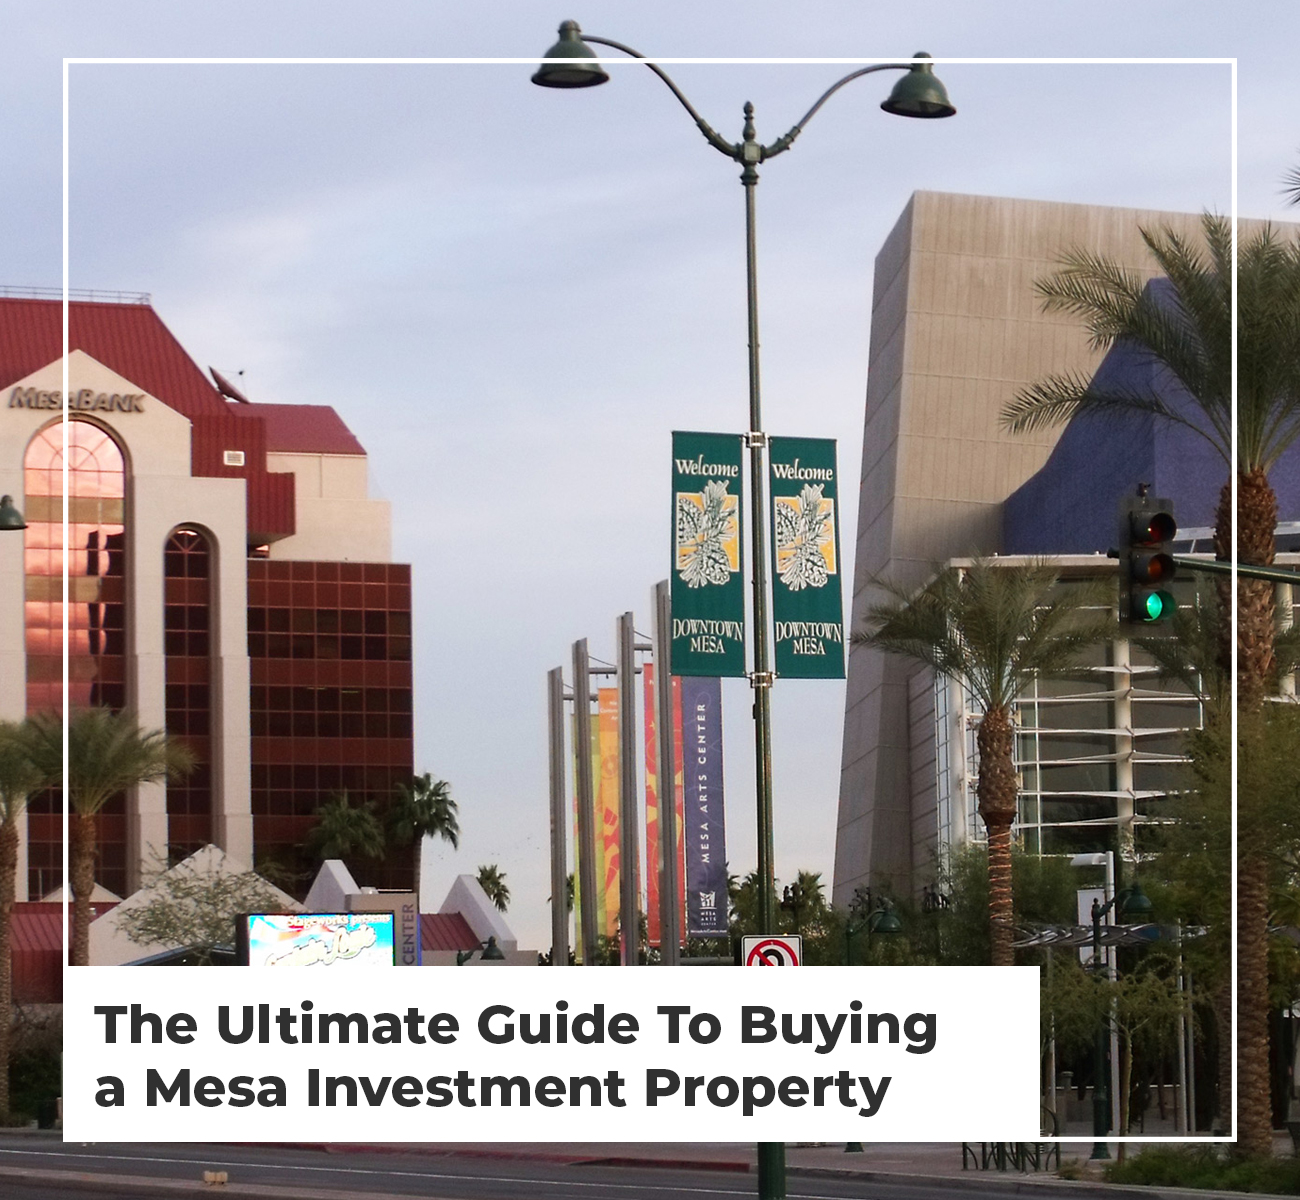 Mesa Investment Property